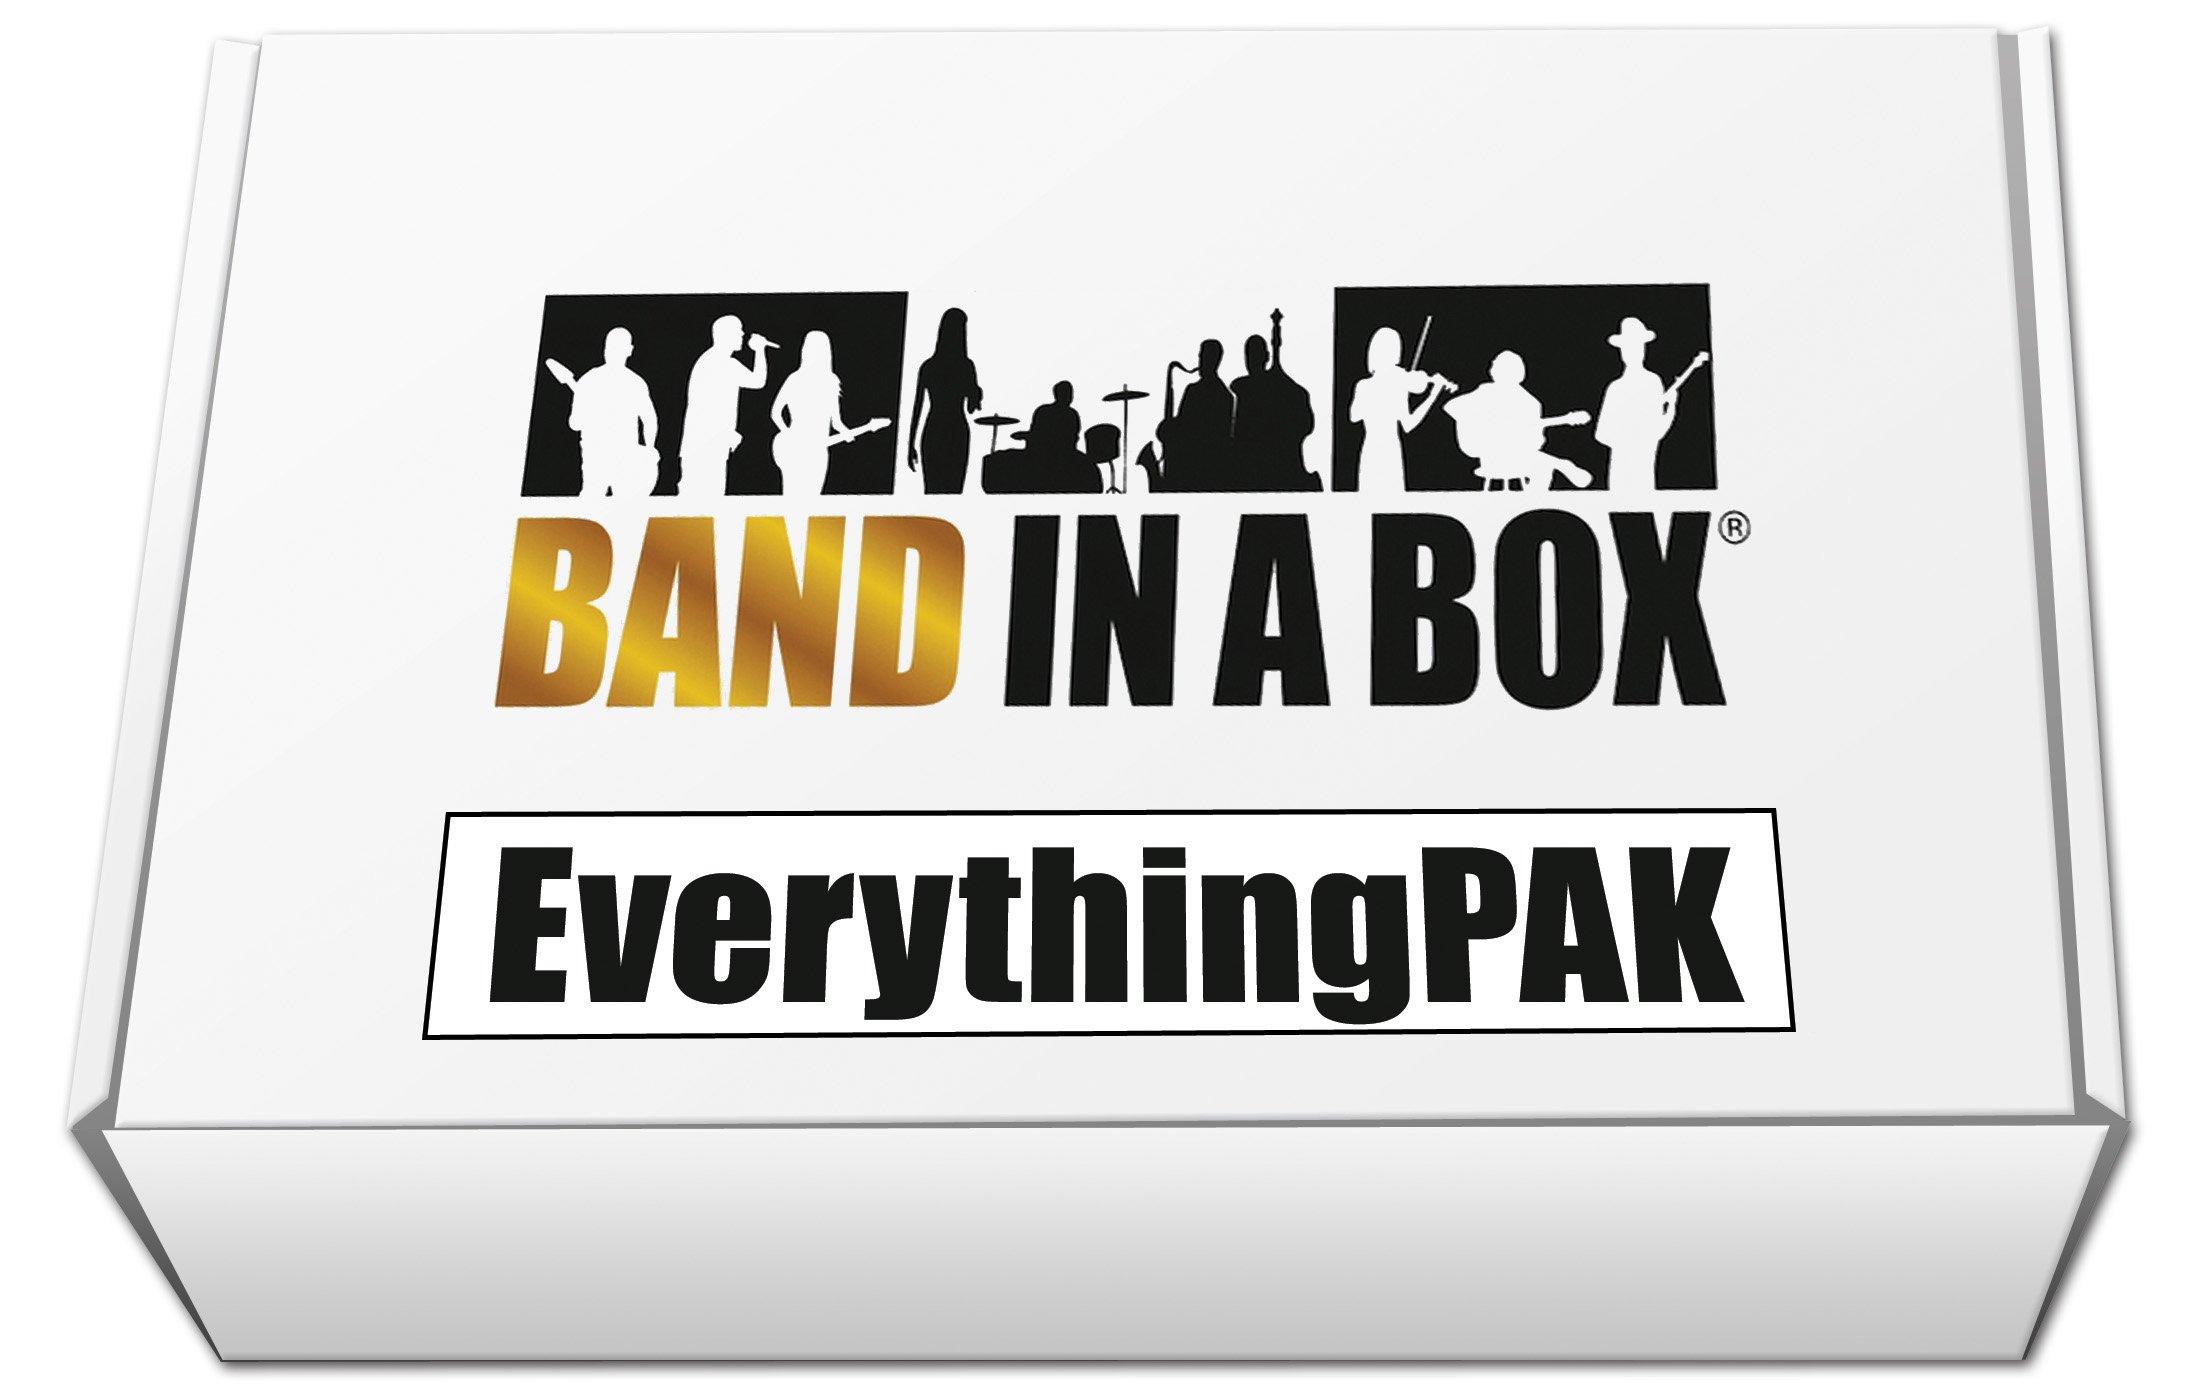 Band-in-a-Box 2017 EverythingPAK [Old Version, Mac USB Hard Drive]